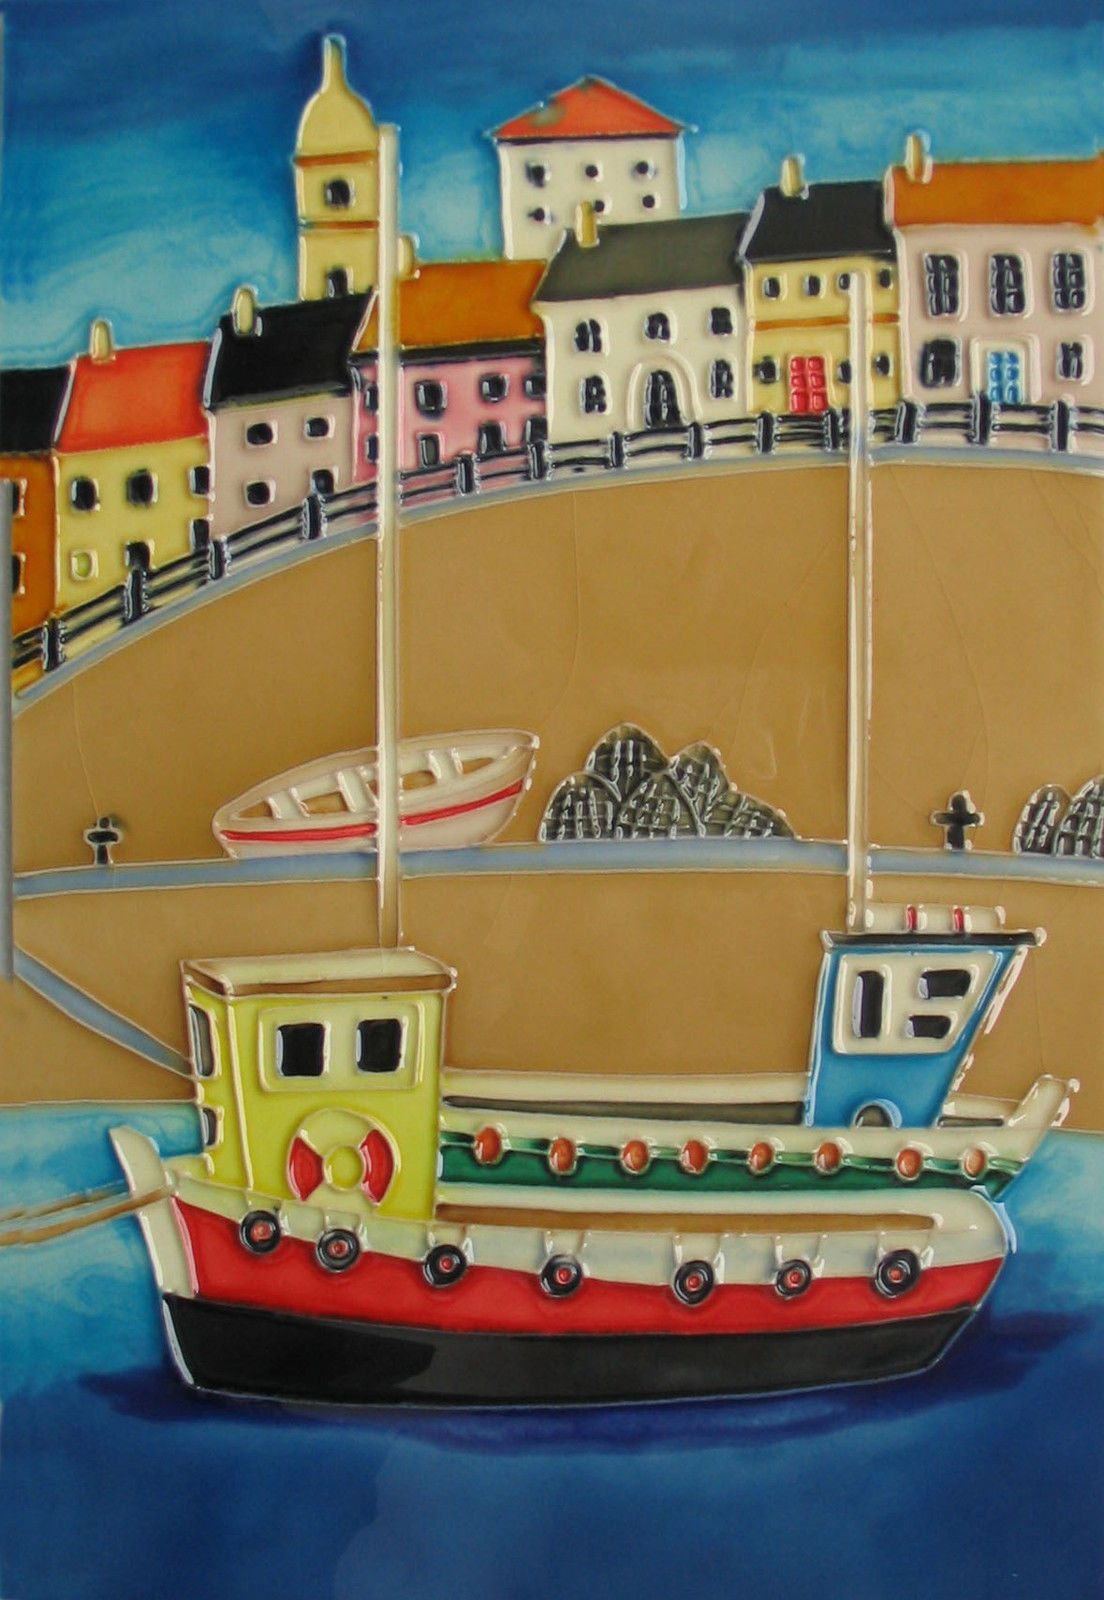 Details about My Harbour Boat Ceramic Wall Art 20x30cm Seaside ...